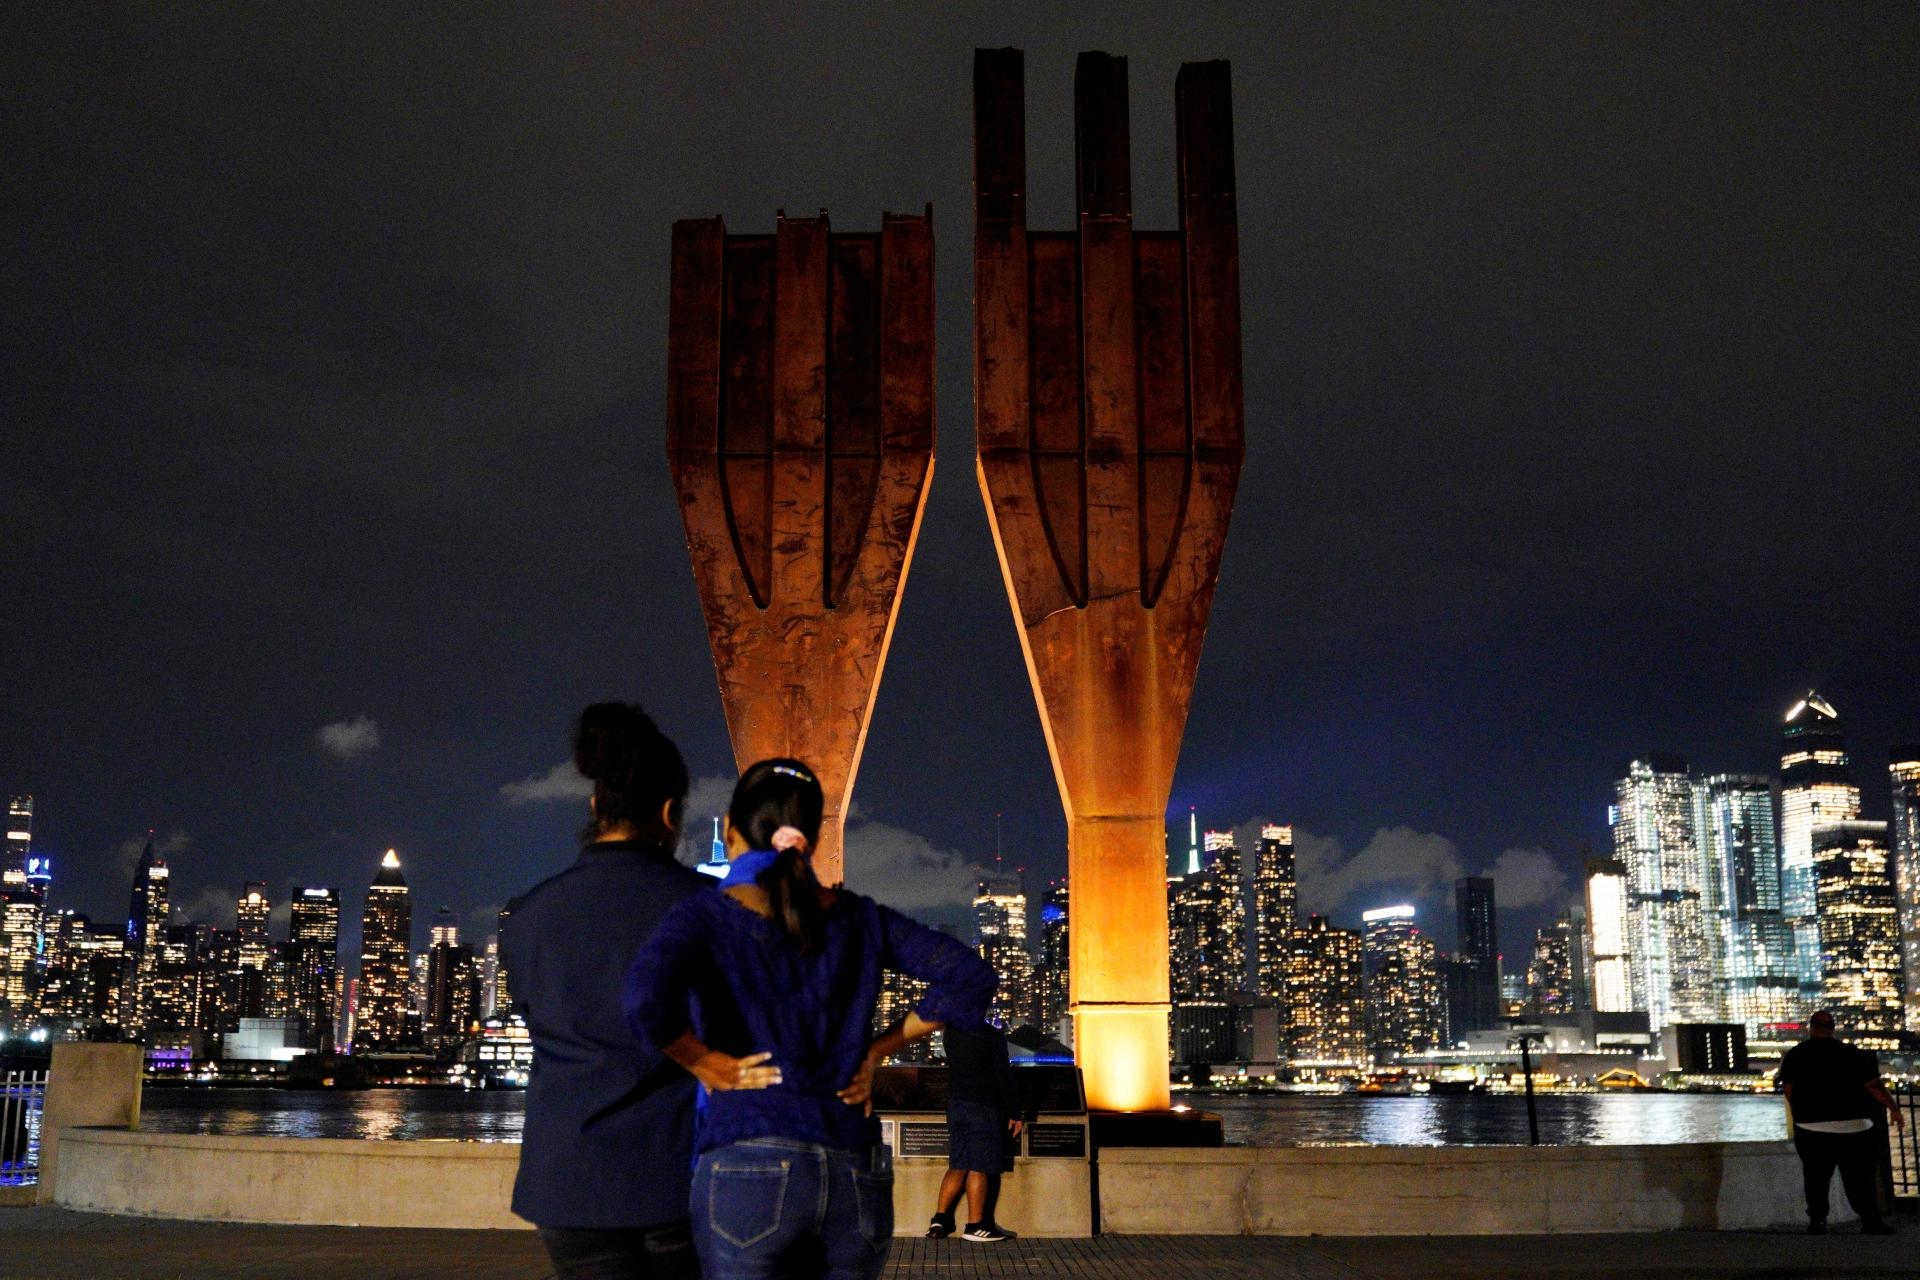 New York prepares for 20th anniversary of 9/11 attacks